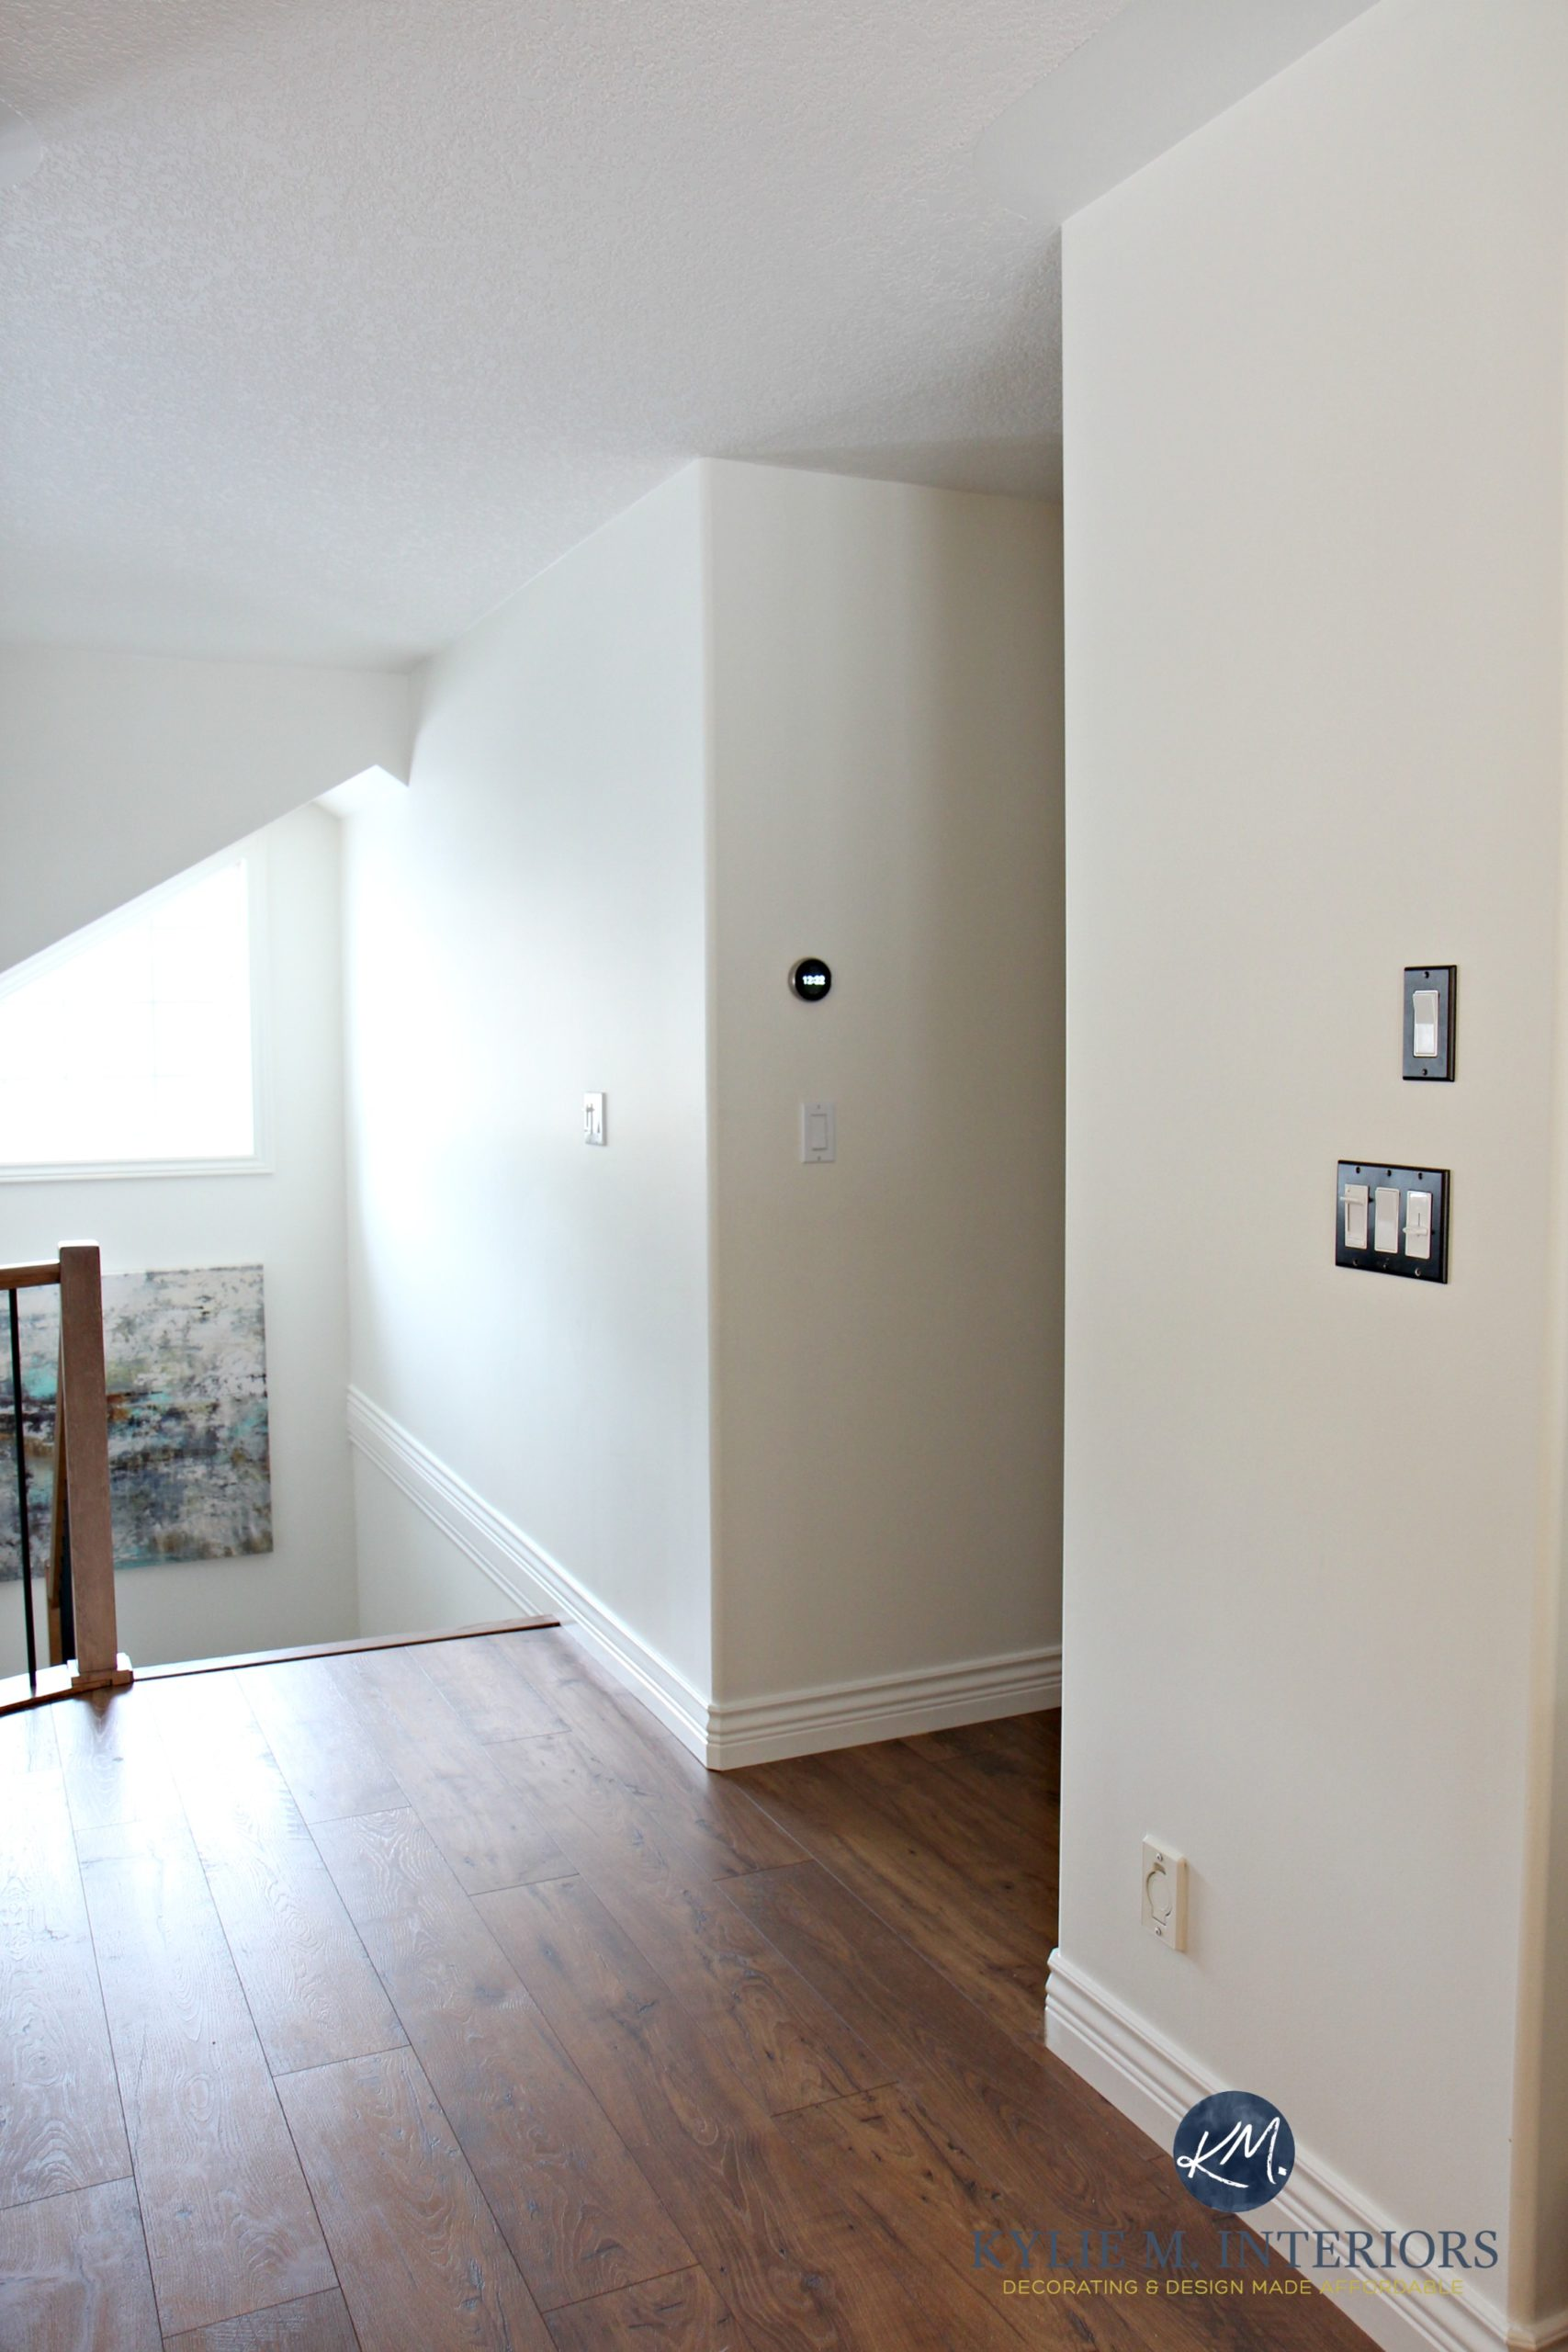 Sherwin Williams Creamy In A North Facing Stairwell And A Dark Hallway With  Laminate Wood Flooring. Kylie M Interiors